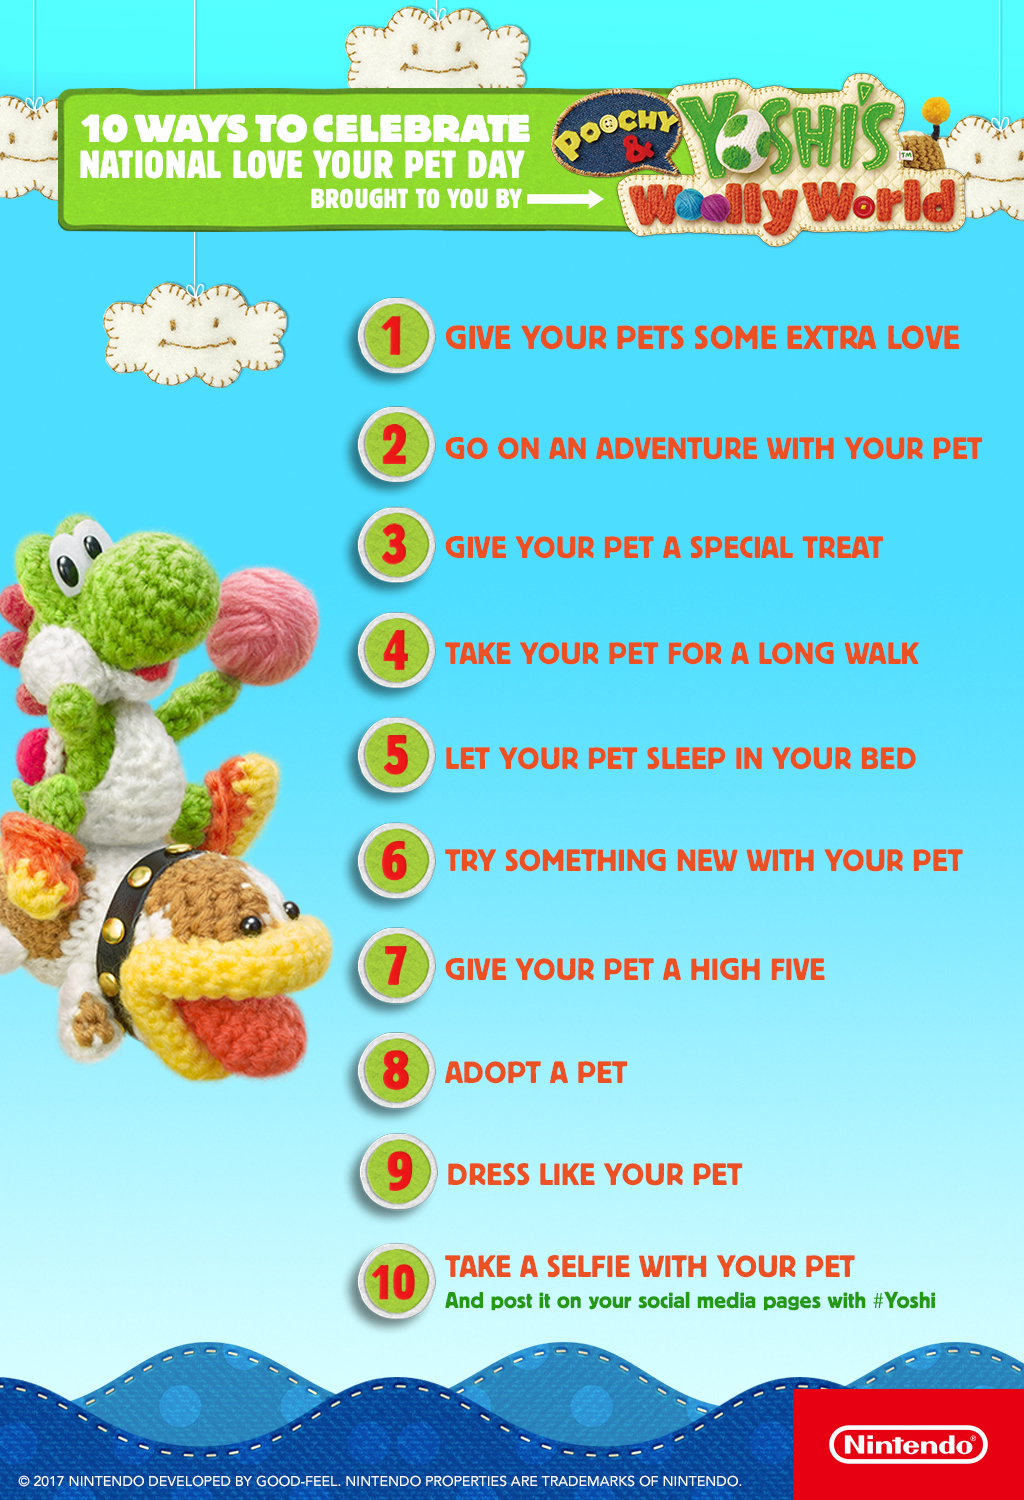 REDMOND, Wash. – In celebration of National Love Your Pet Day on Feb. 20, Poochy and Yoshi offer tips about how to honor your adorable pets on this special day. (Graphic: Business Wire)